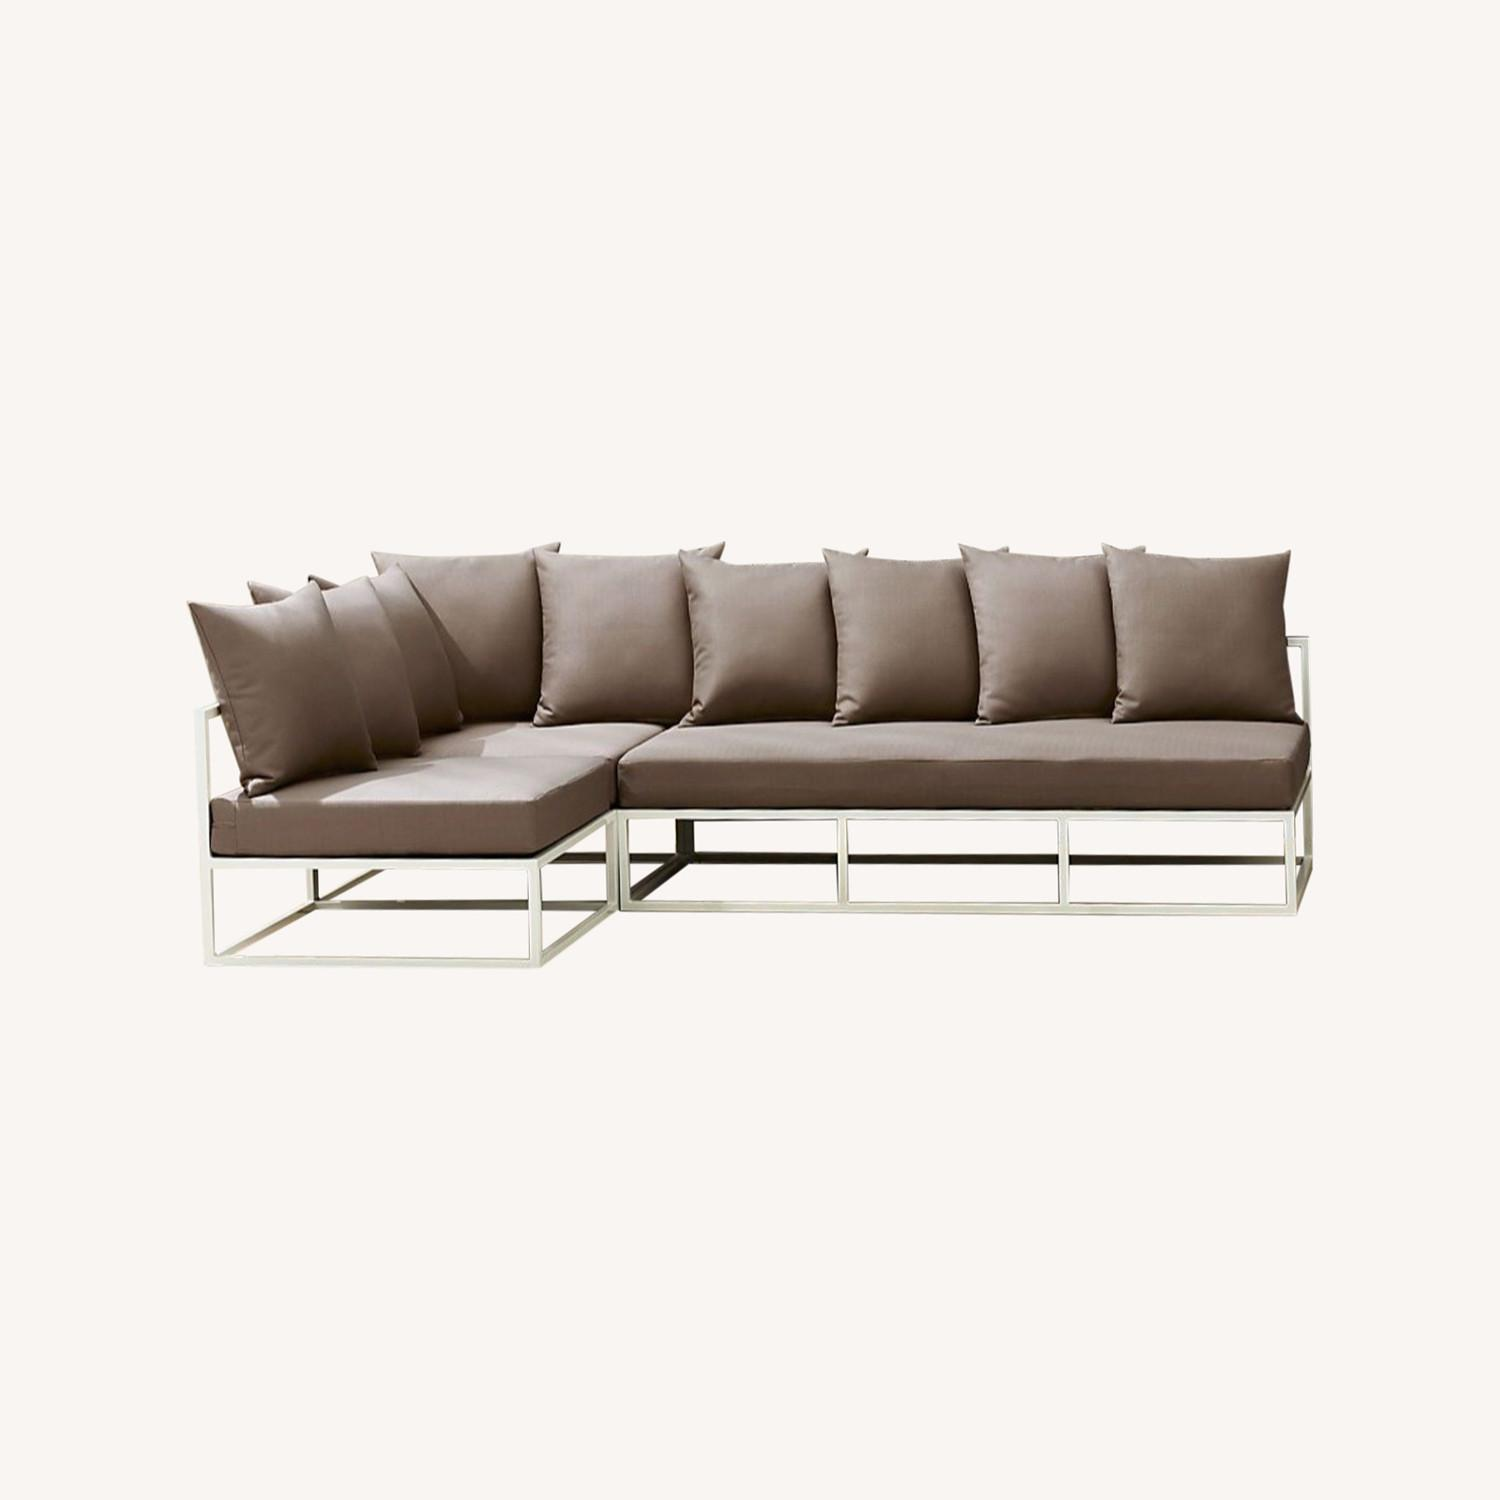 CB2 Casbah Outdoor Sectional Couch - image-0